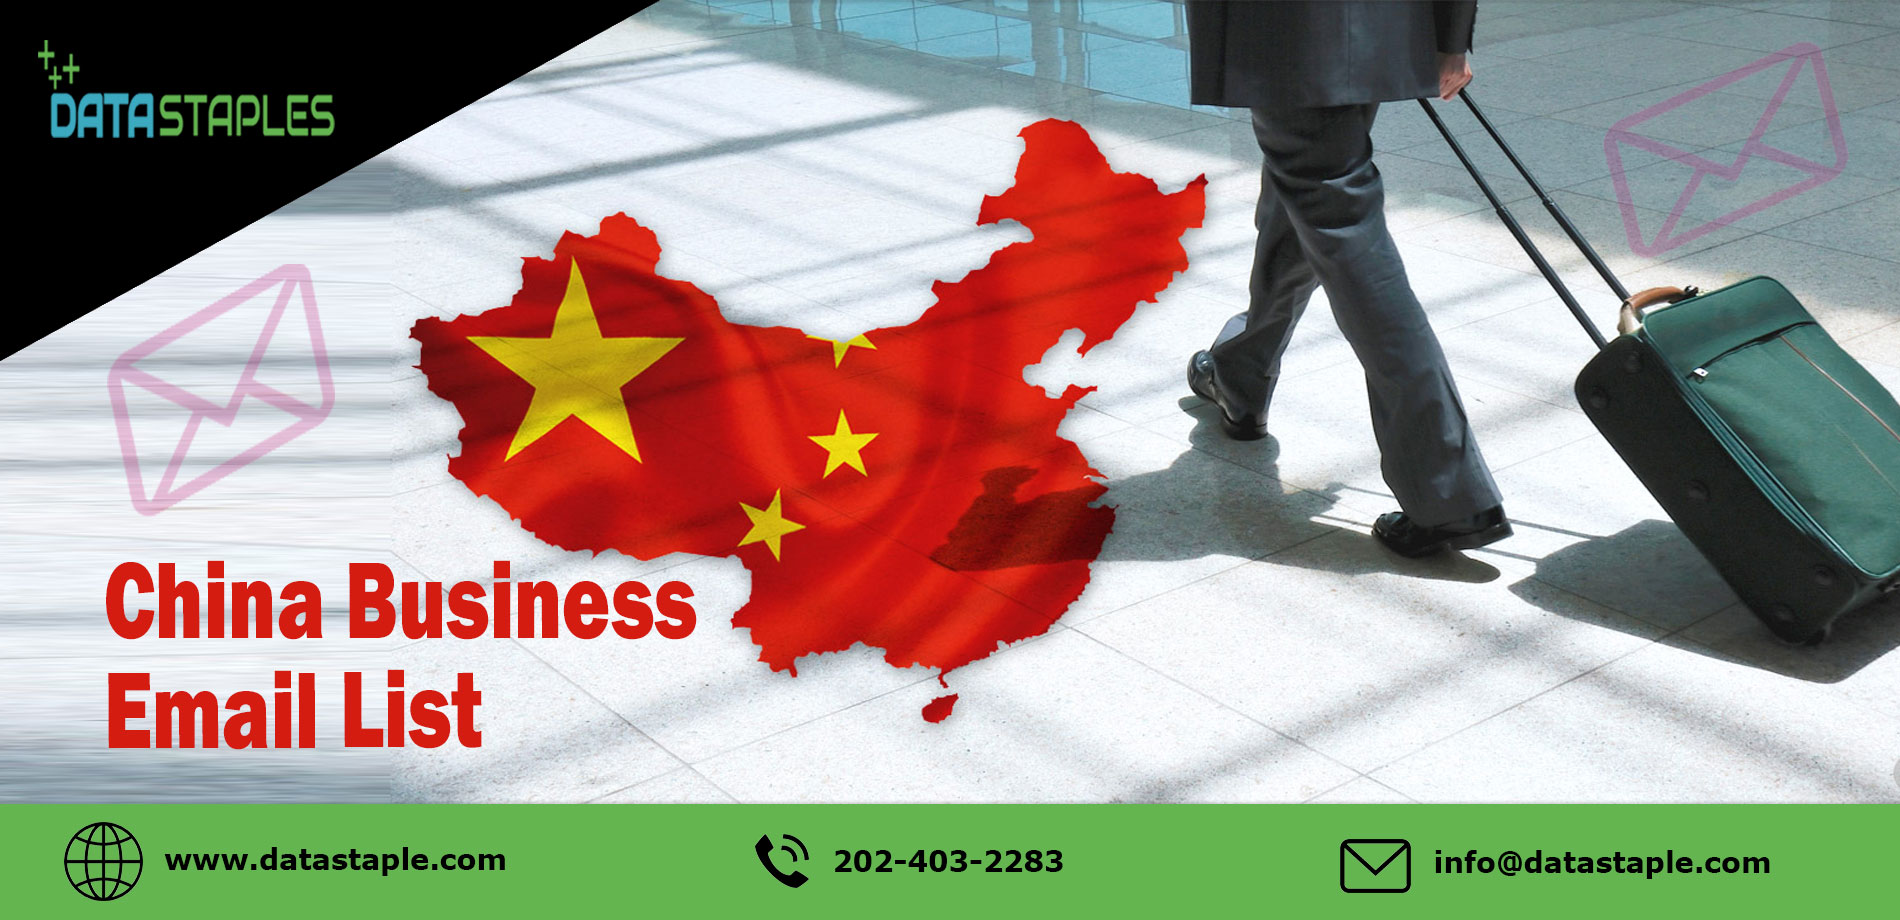 China Business Email List   DataStaples